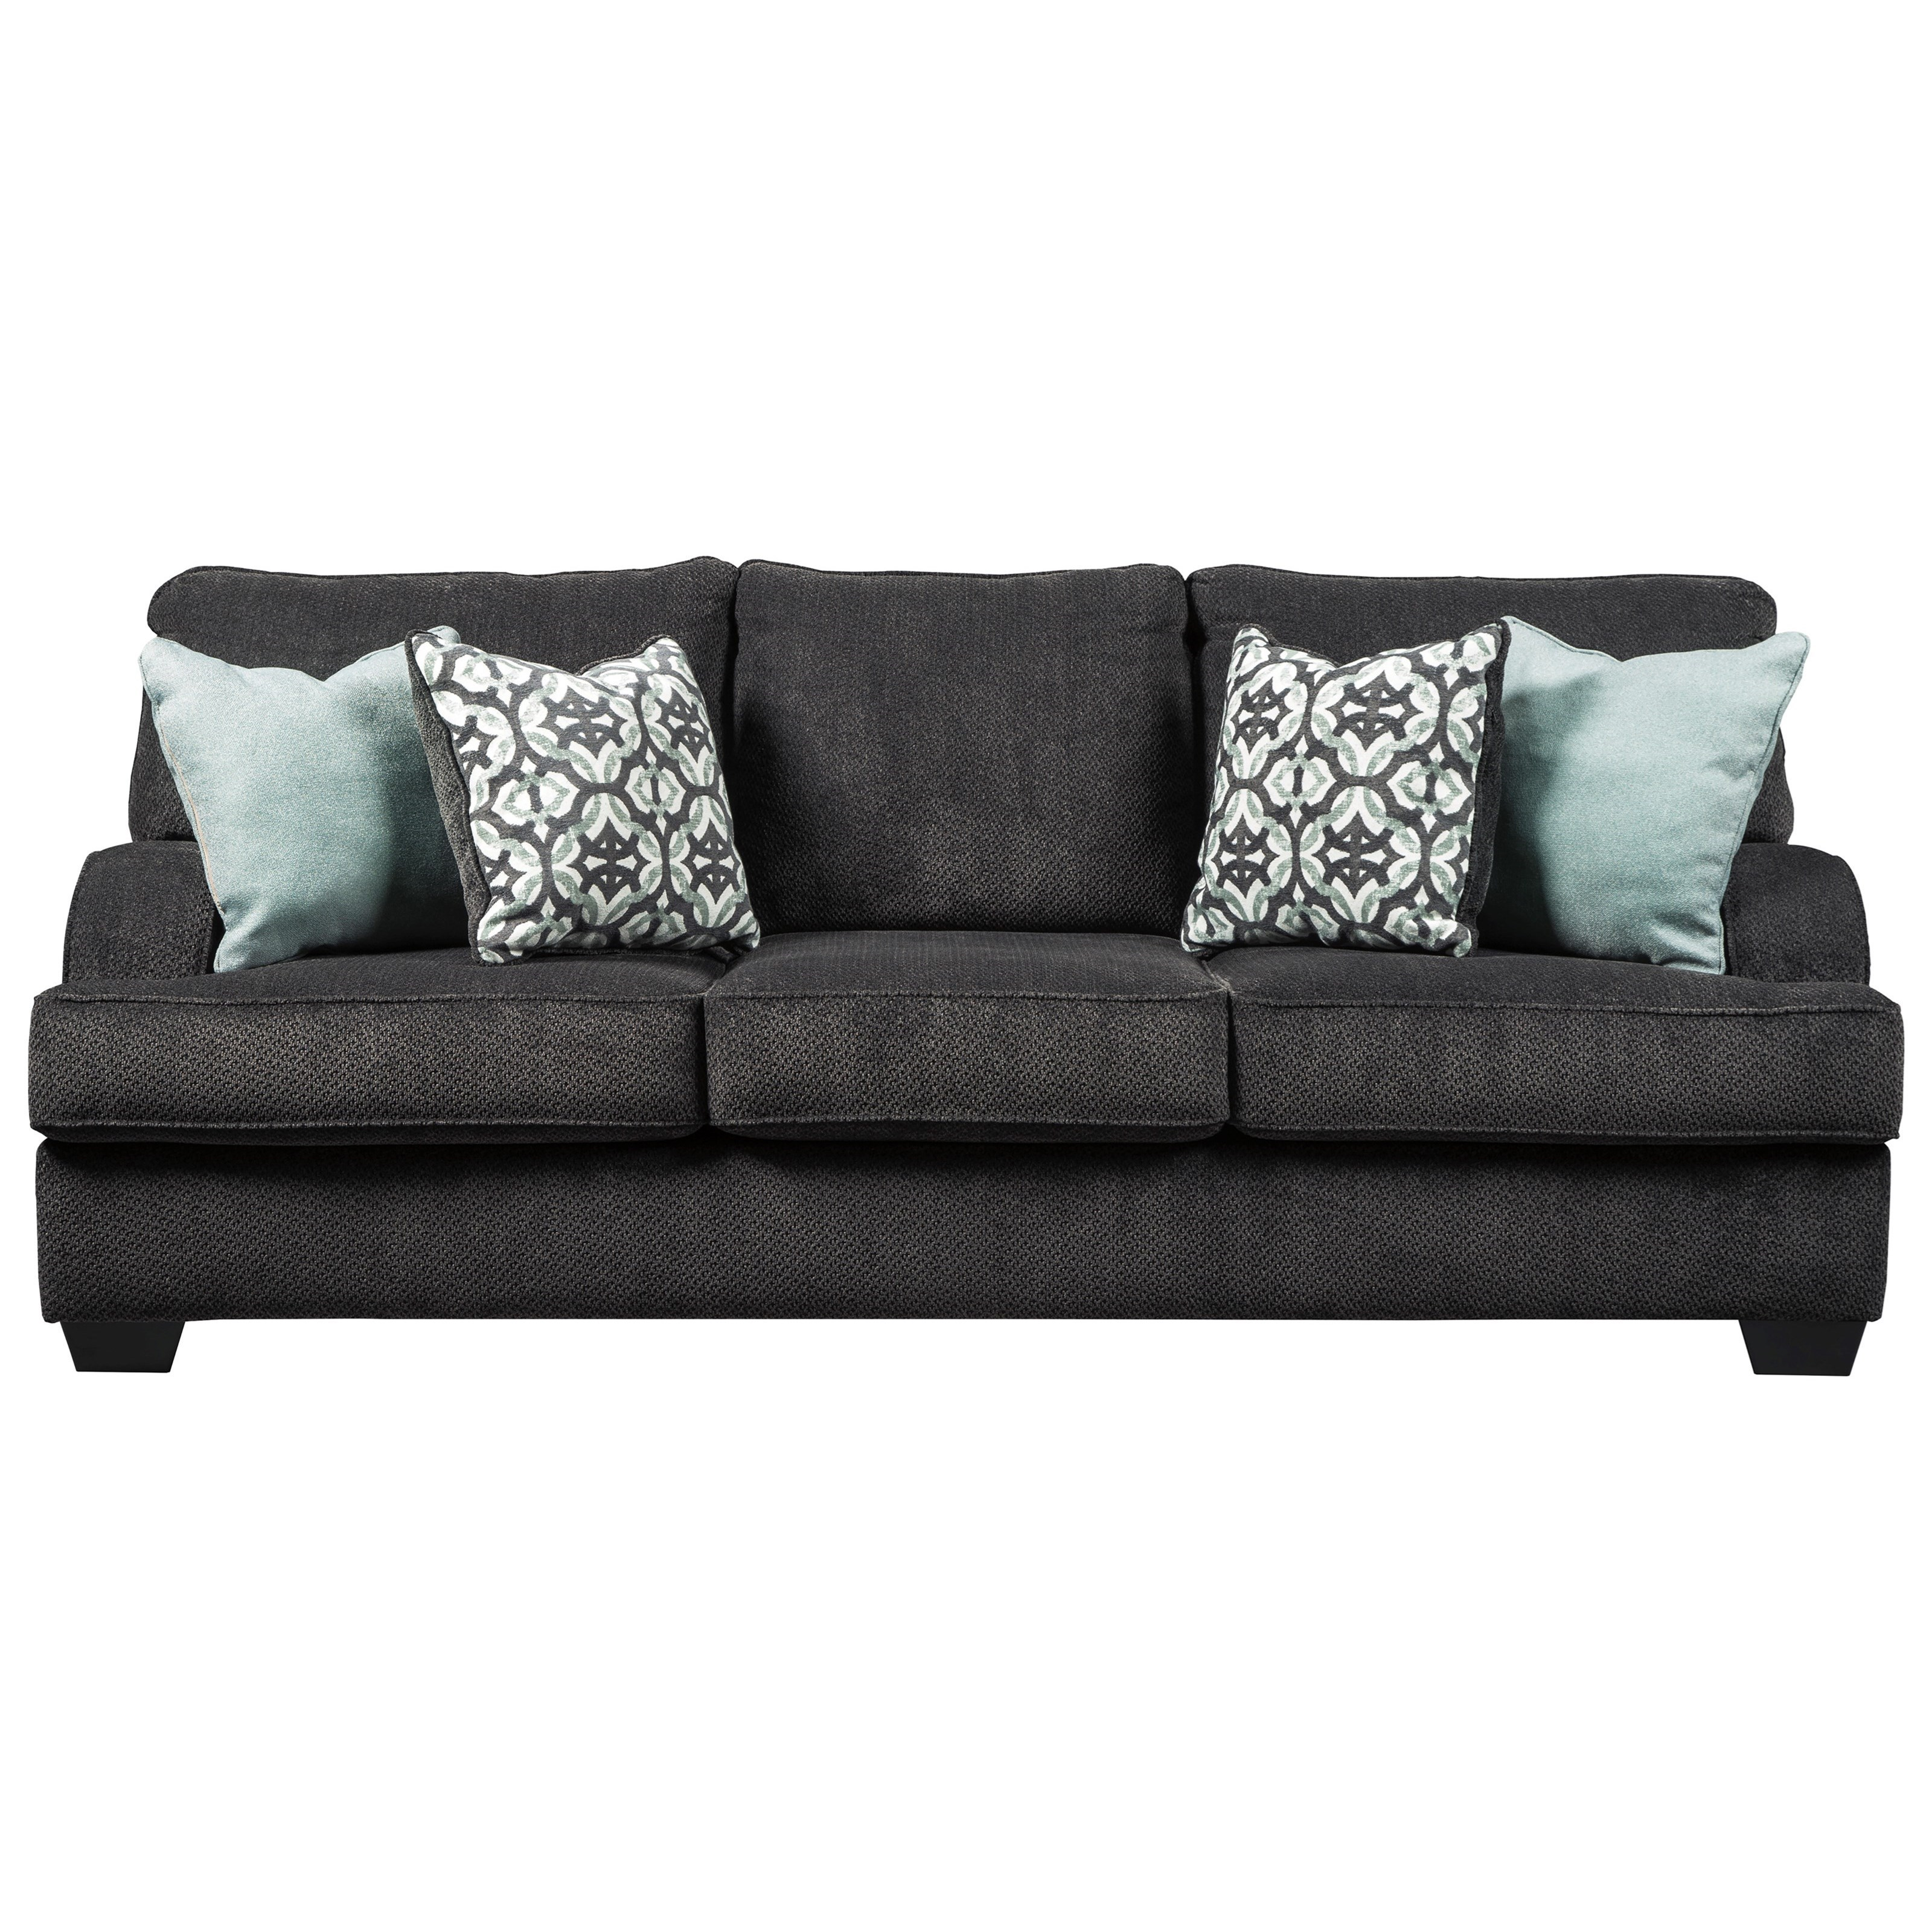 benchcraft by ashley charenton queen sofa sleeper with english arms rh royalfurniture com ashley sleeper sofa queen ashley sleeper sofas reviews